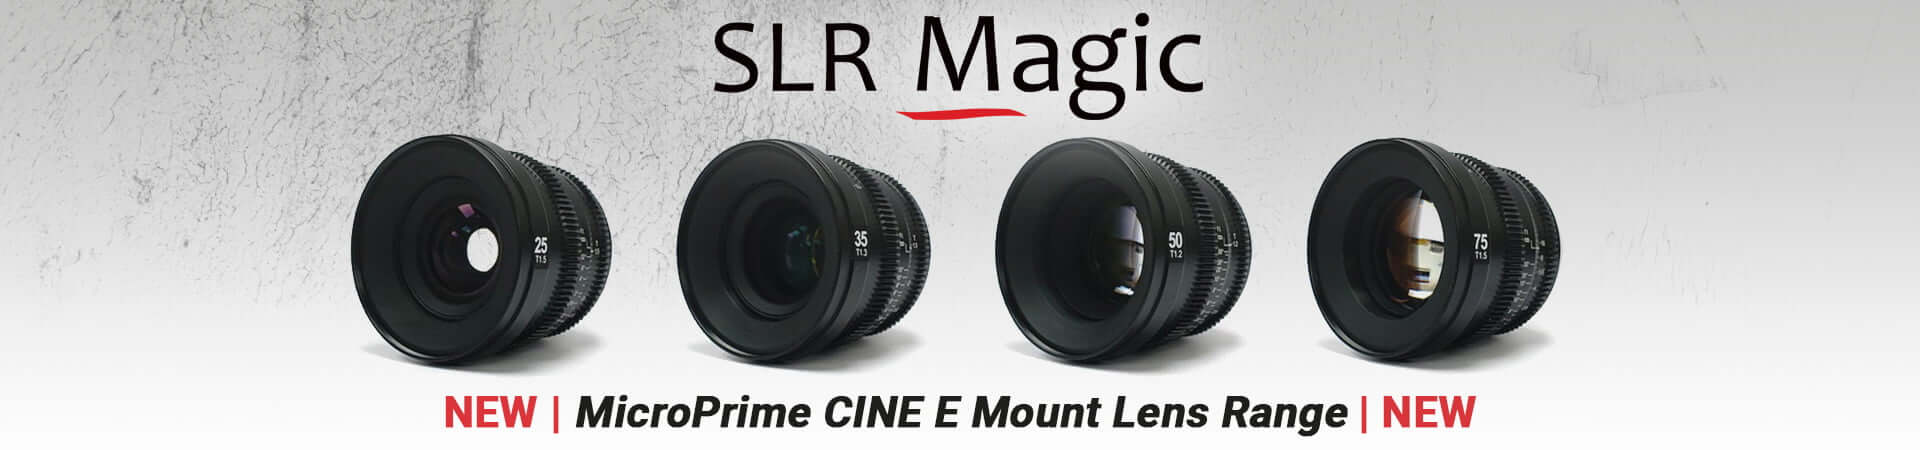 SLR-Magic-Microprime-Cine-E-mount-lenses.jpg